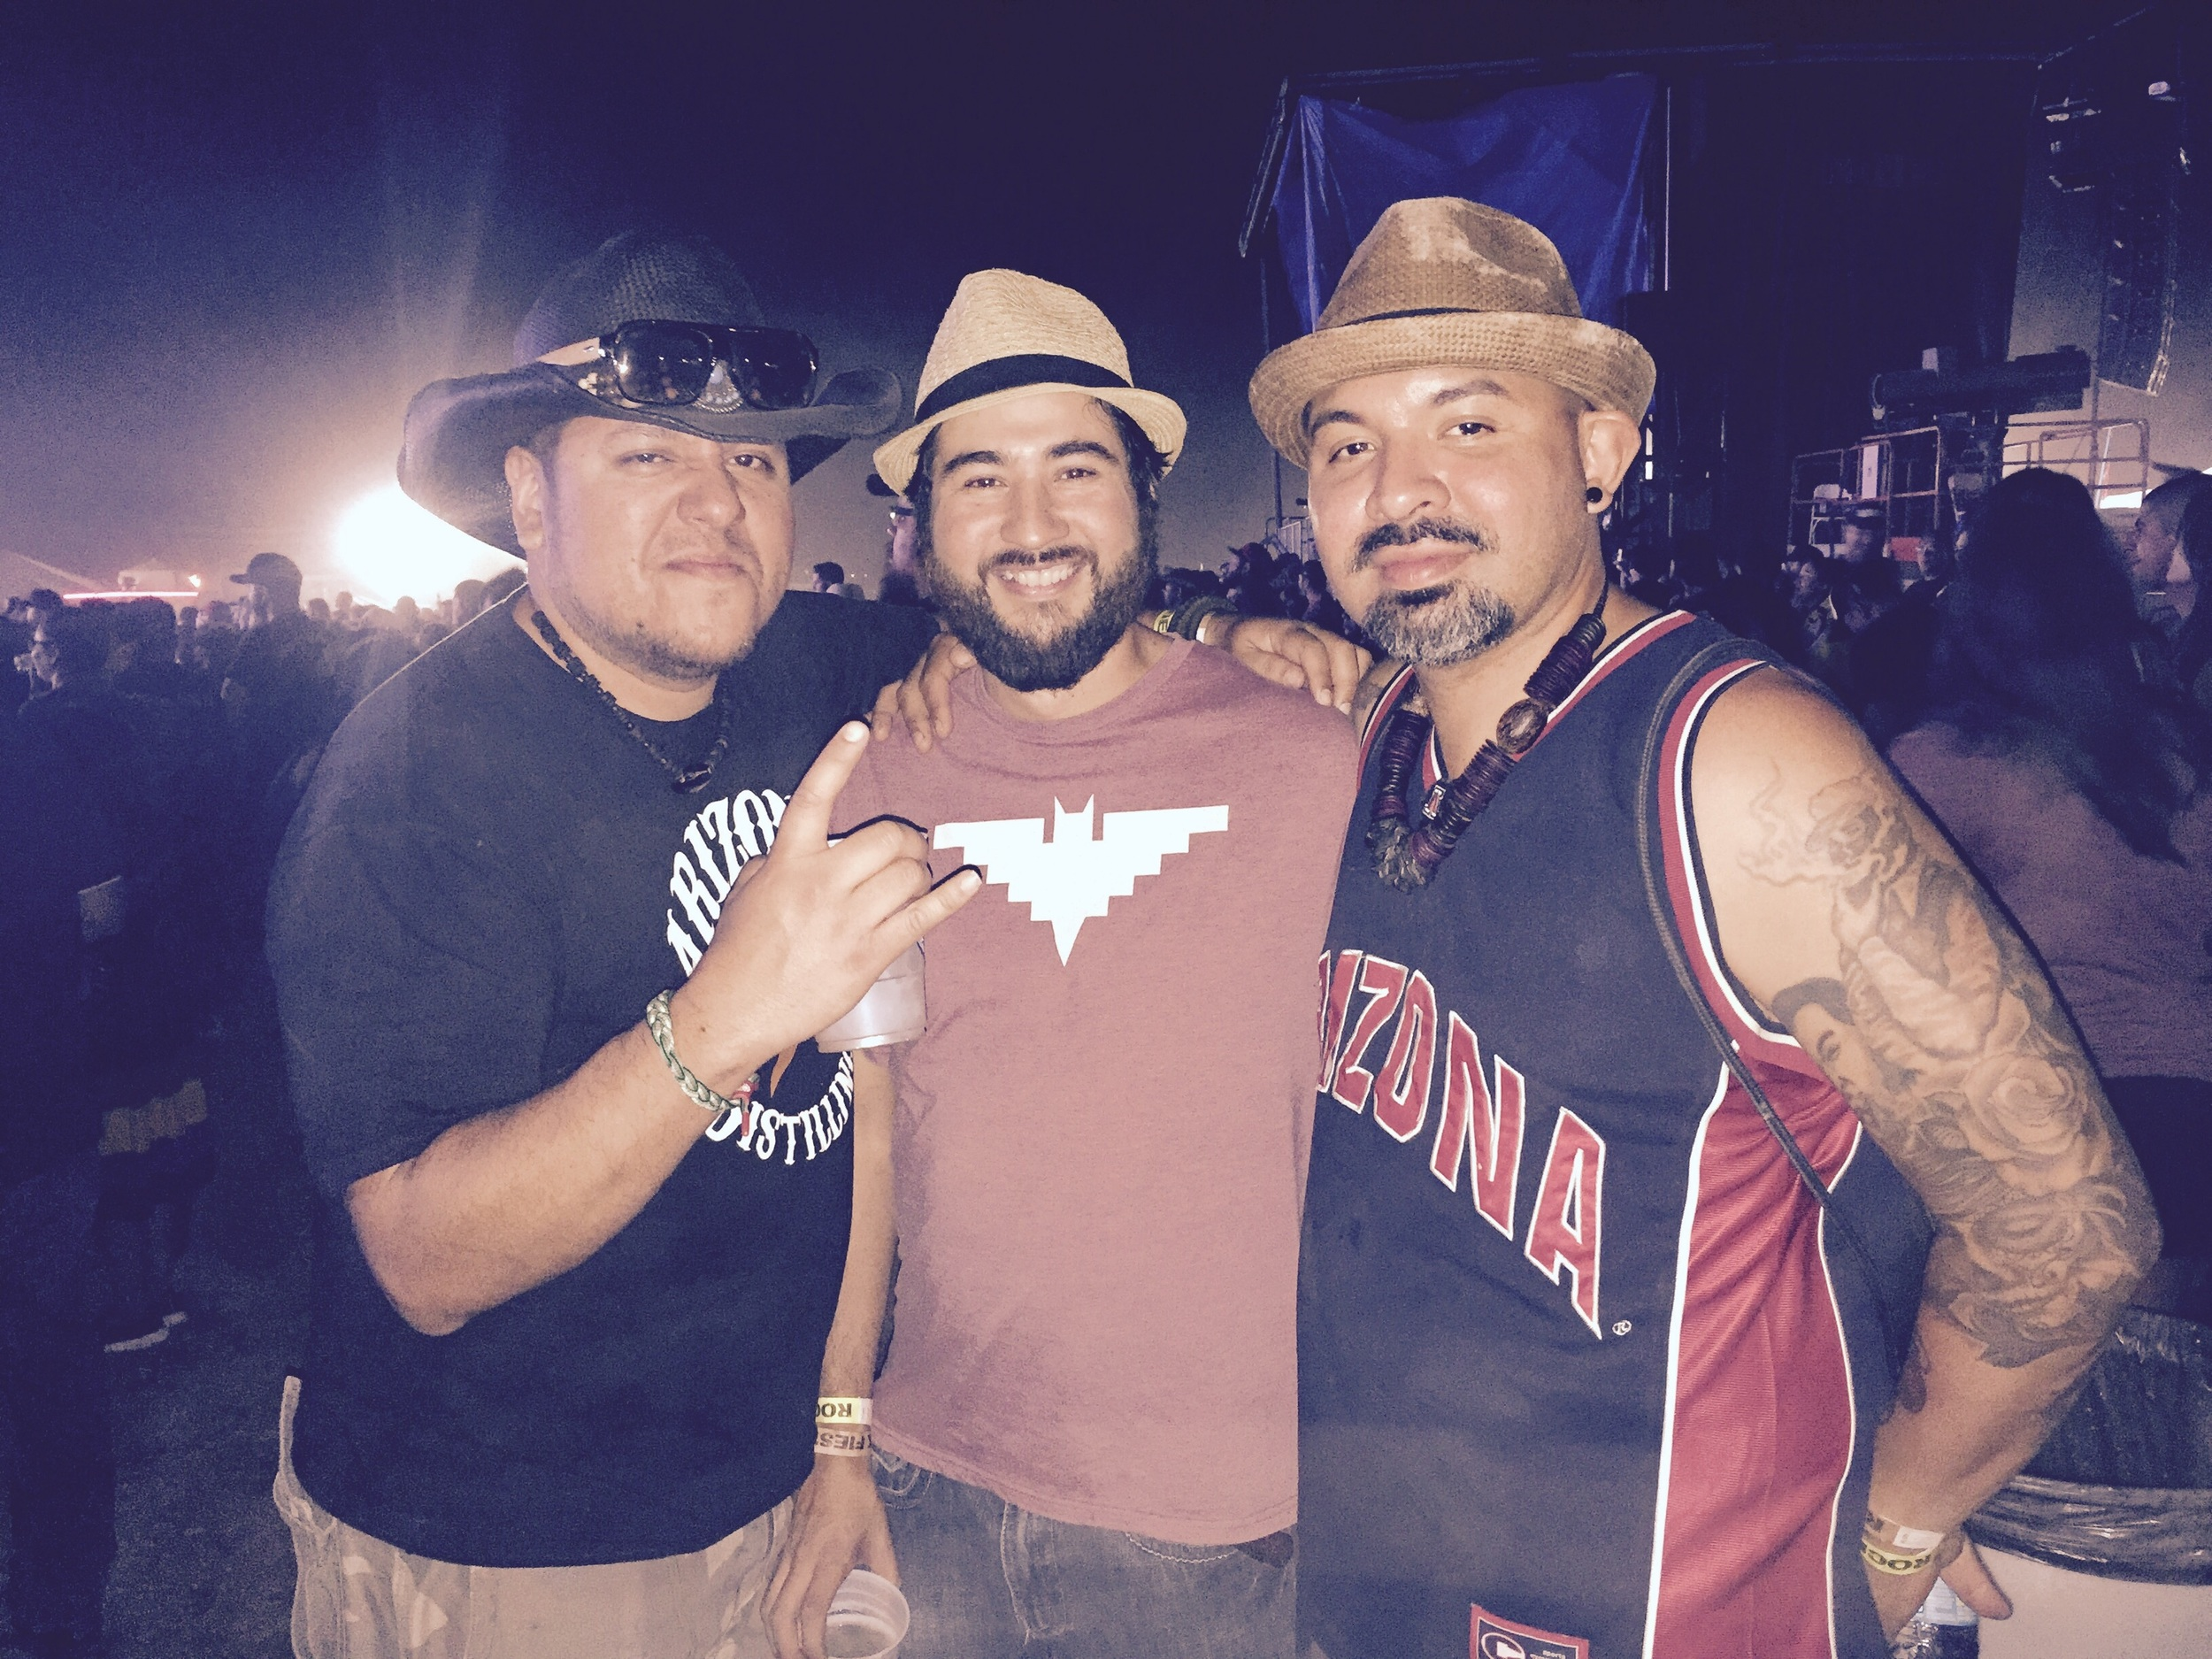 Miguel, Marcos and Gabe at RockFiesta 2016.